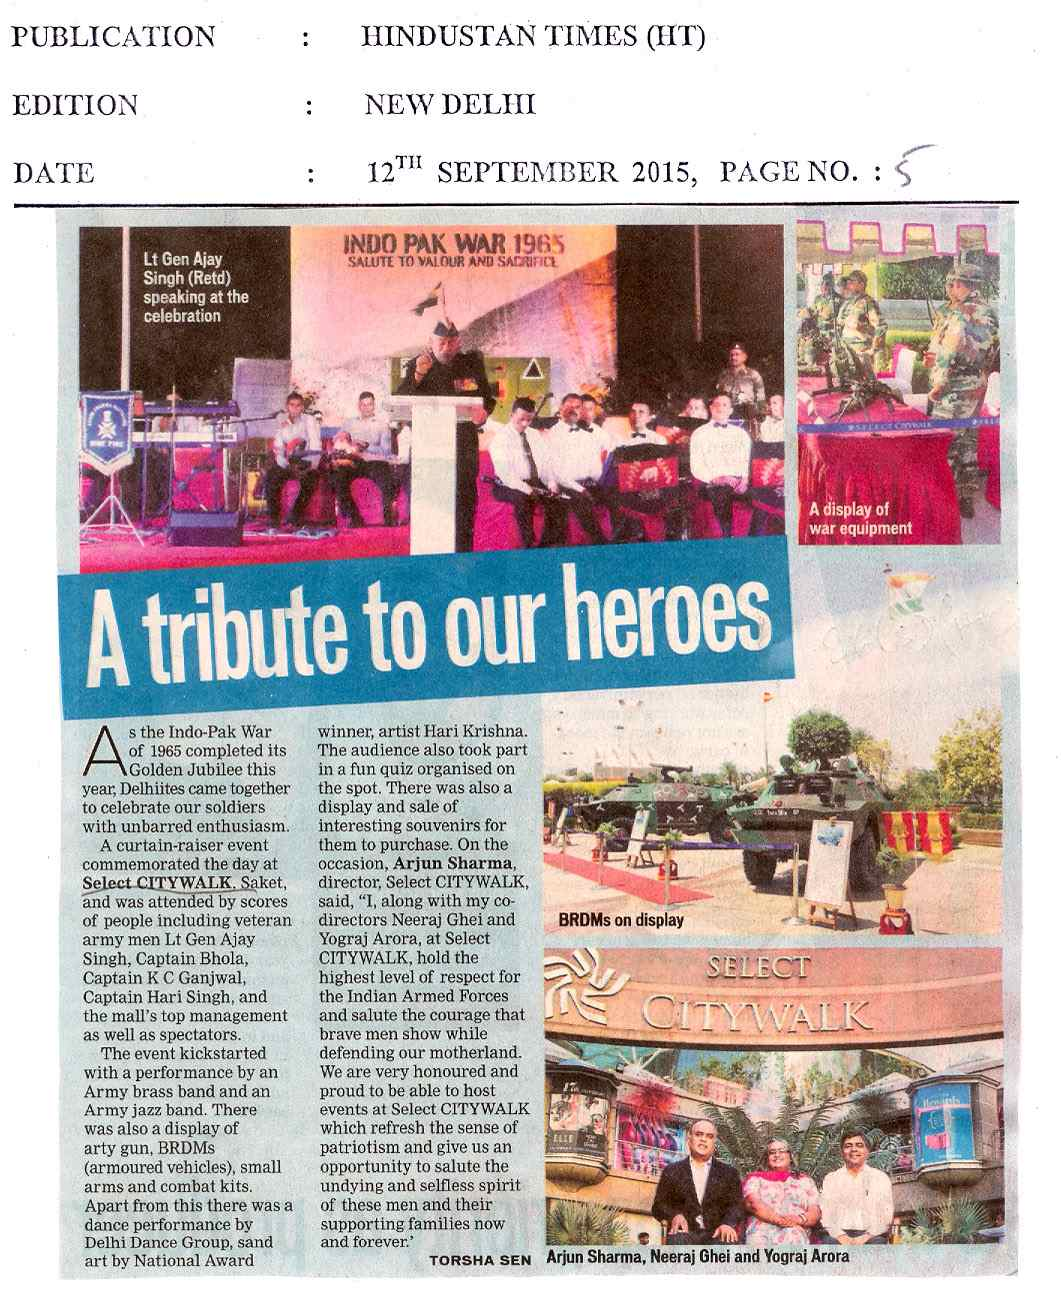 A tribute to our heroes